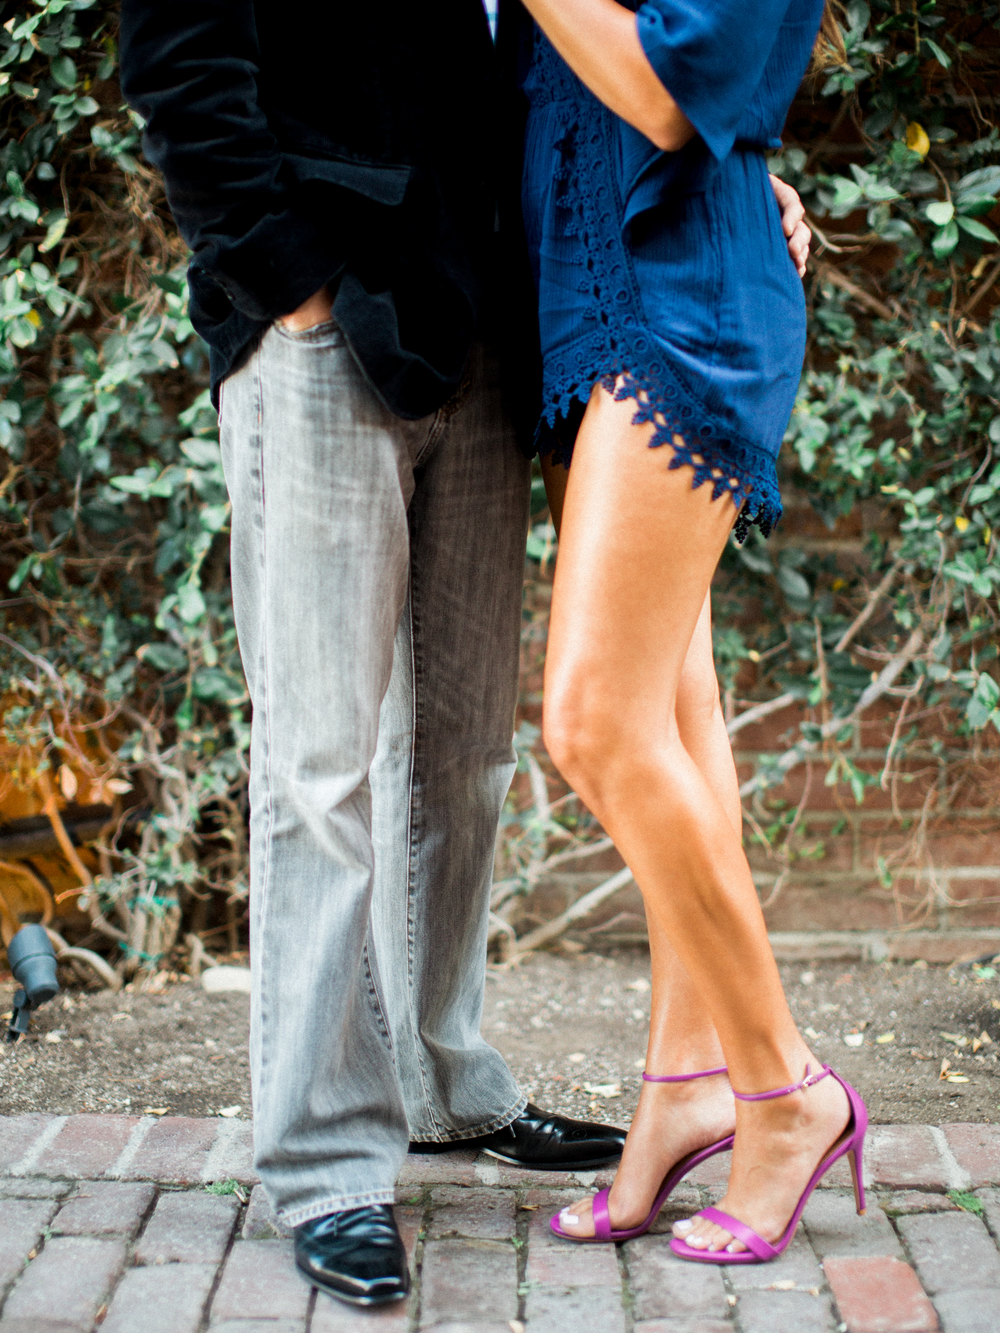 downtown_losangeles_engagement_photos_chantepaul-21.jpg